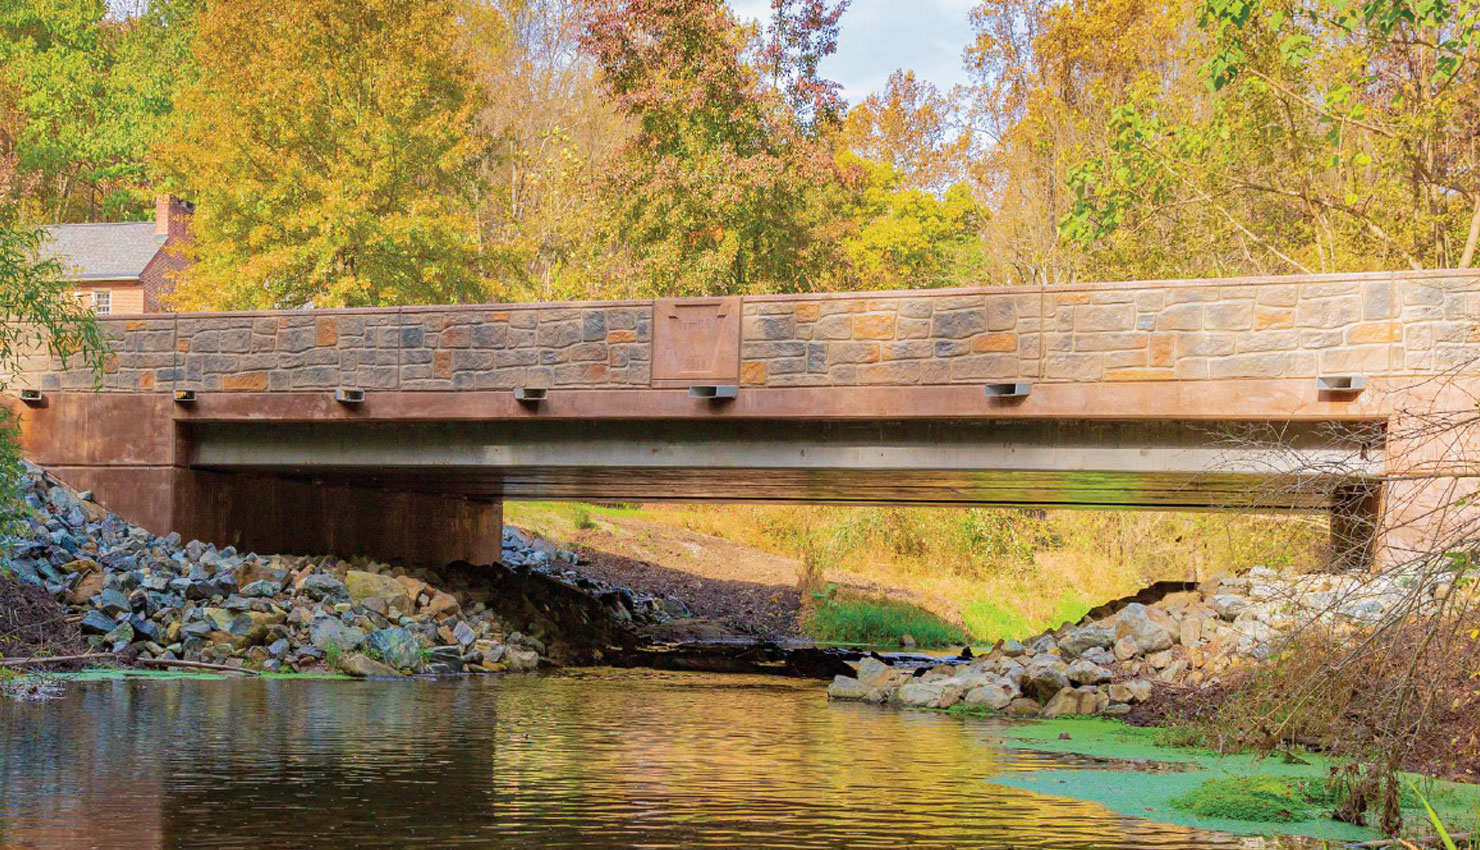 Rapid Bridge Replacement Project Newsletter - Issue 7: Spring 2018